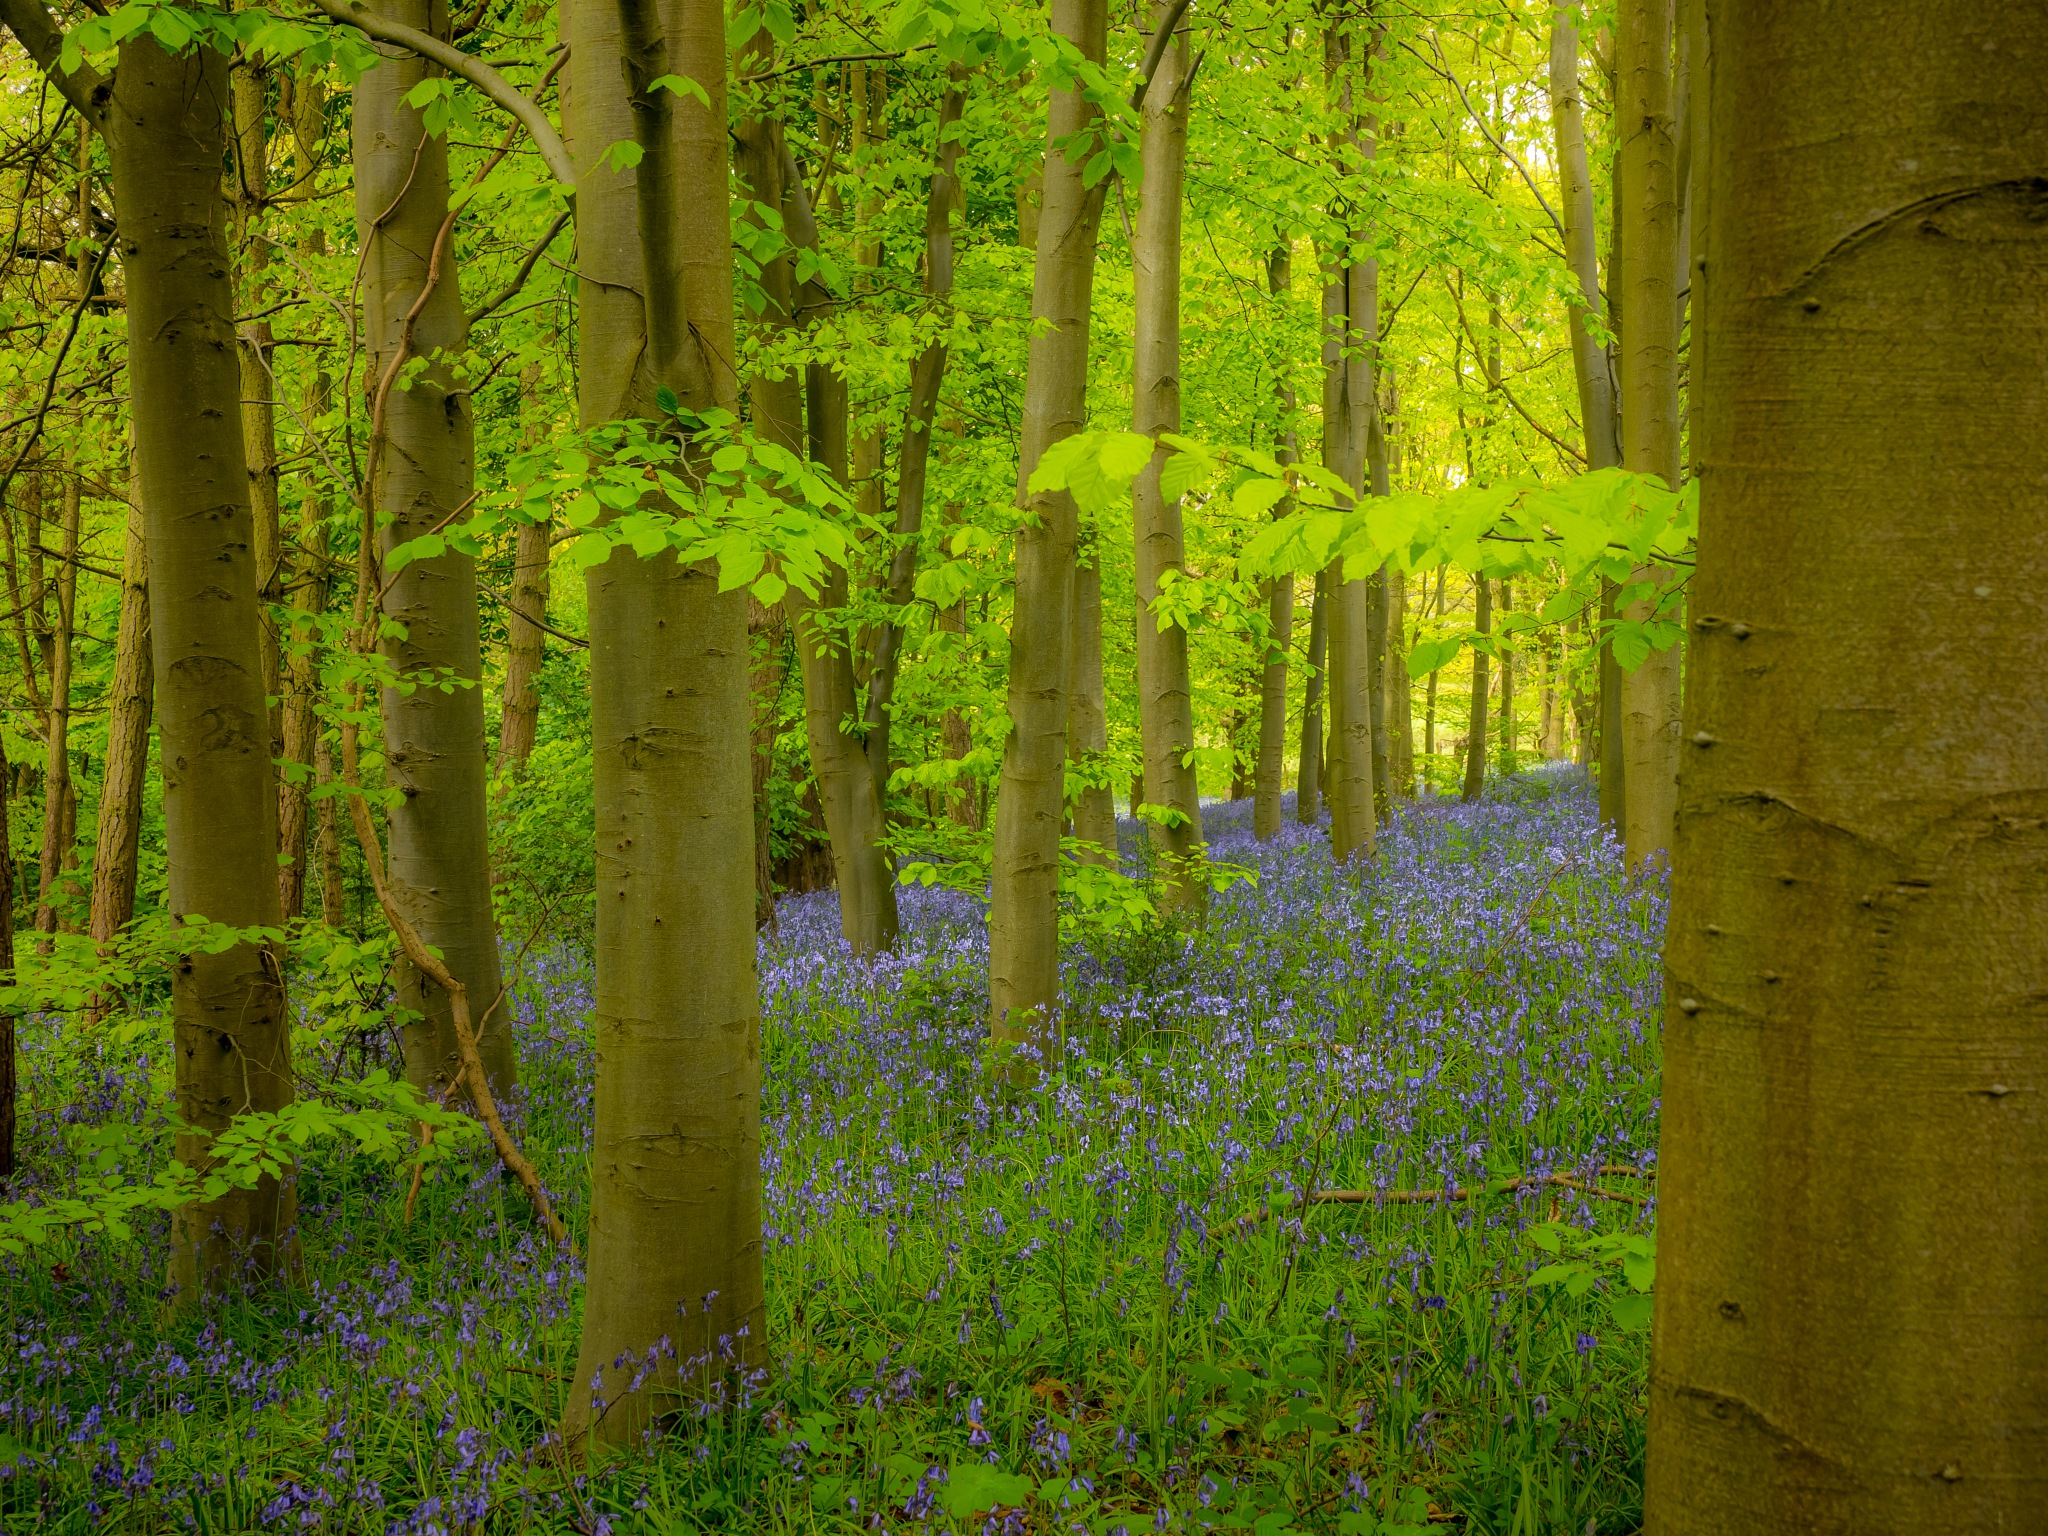 Bluebell Bank by Sarah Walters